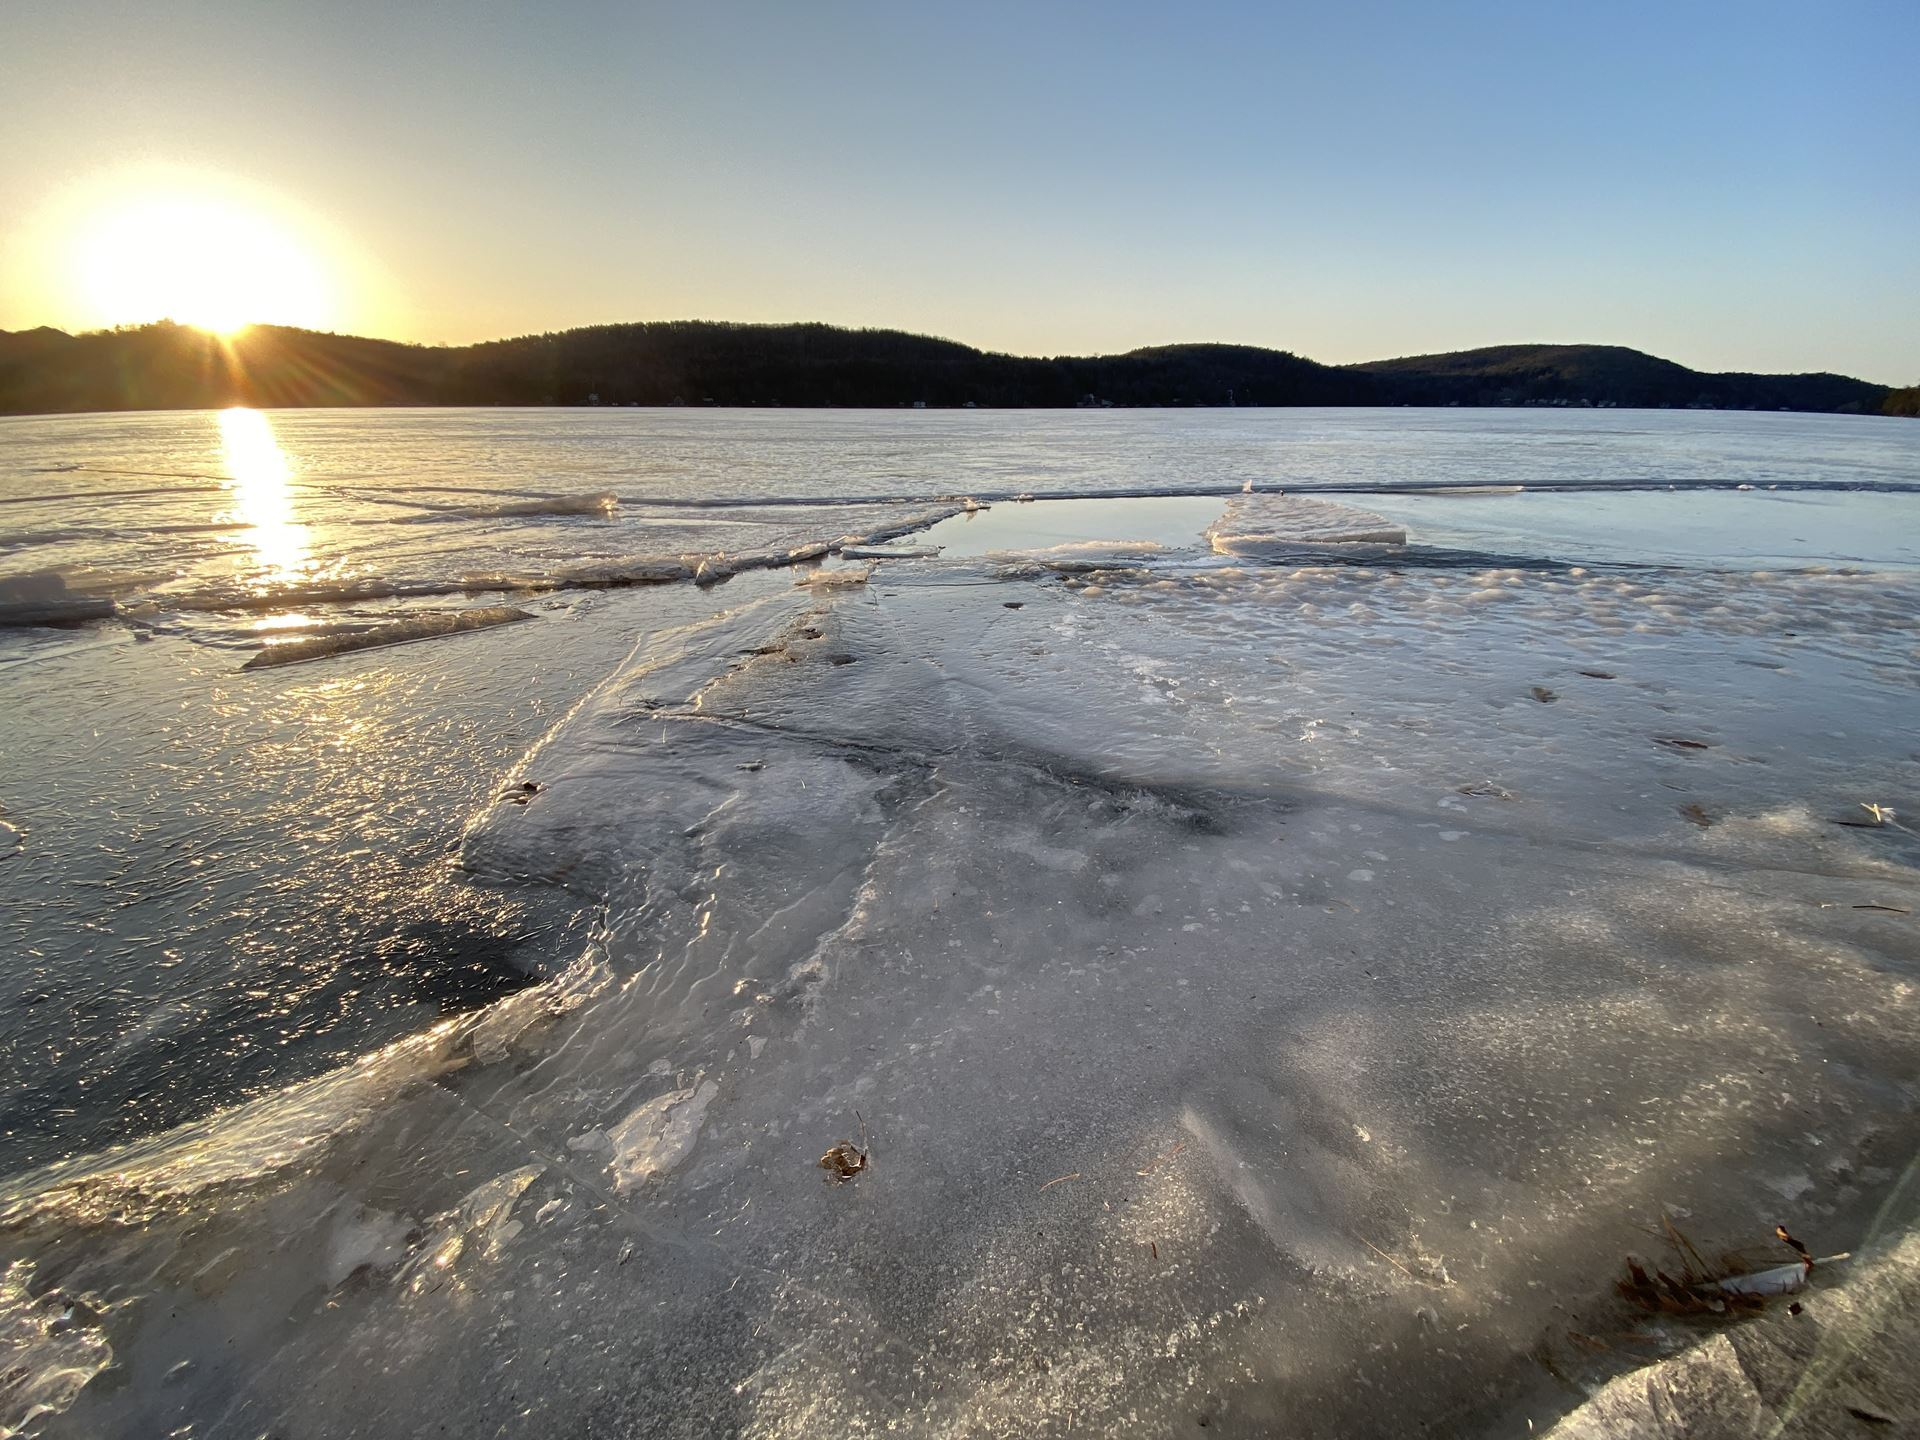 Lake St. Catherine - Ice Out Prediction